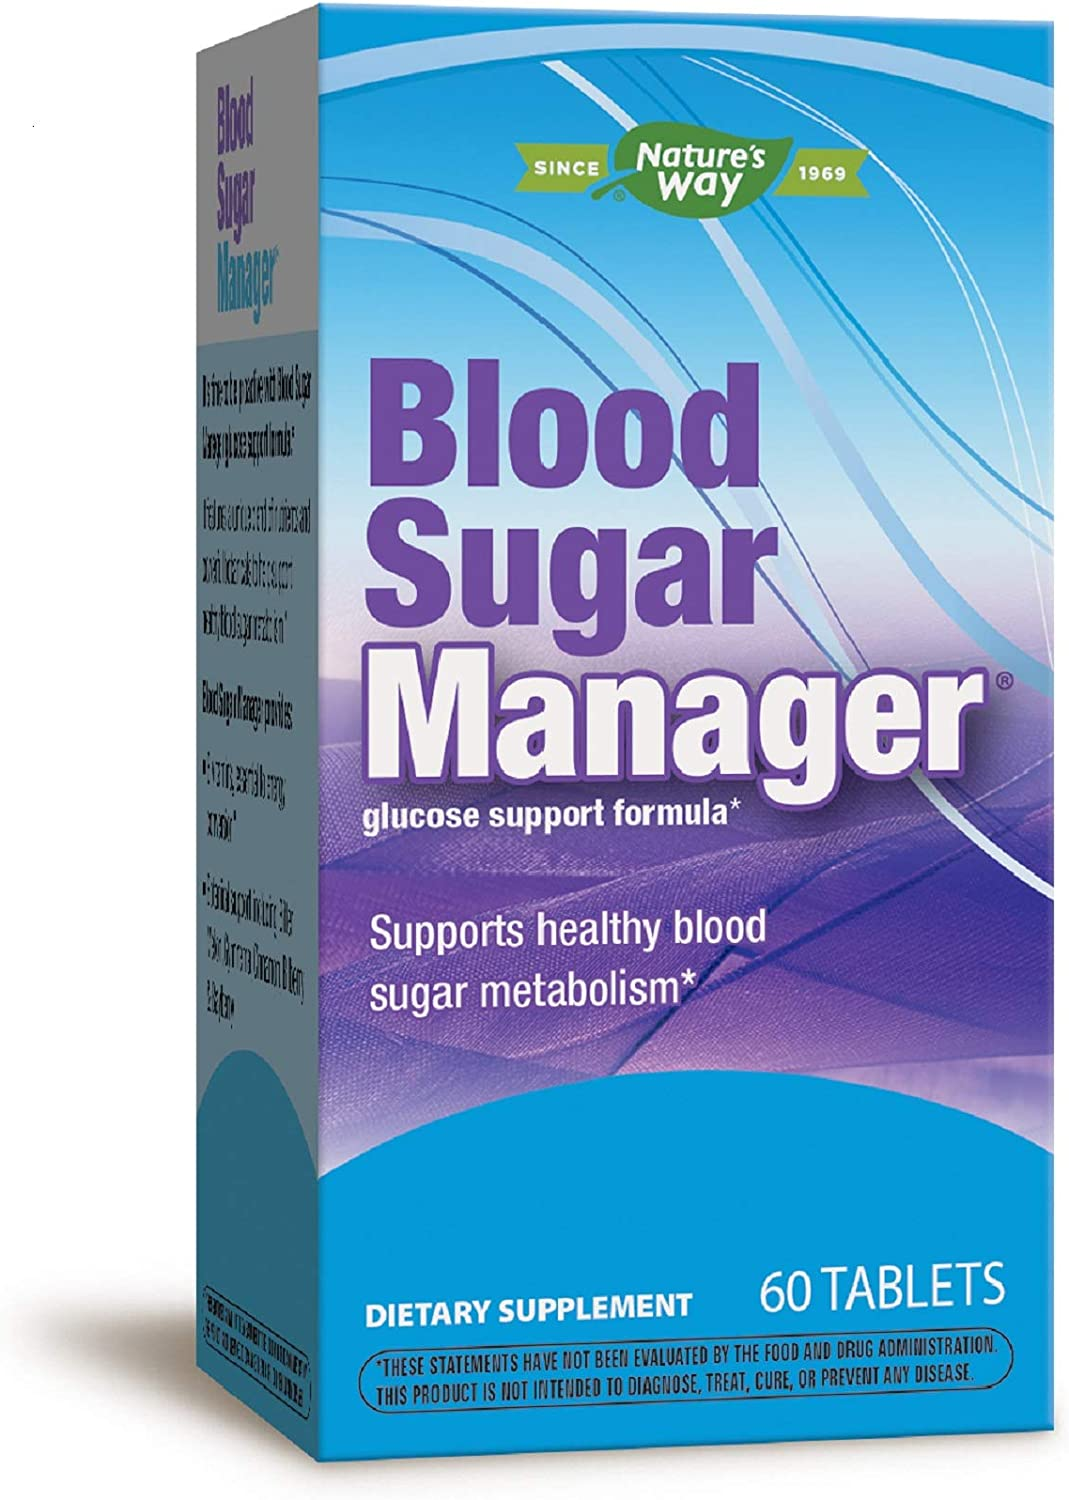 Nature's Way Blood Sugar Manager Glucose Support Formula, 60 Count (Packaging May Vary)